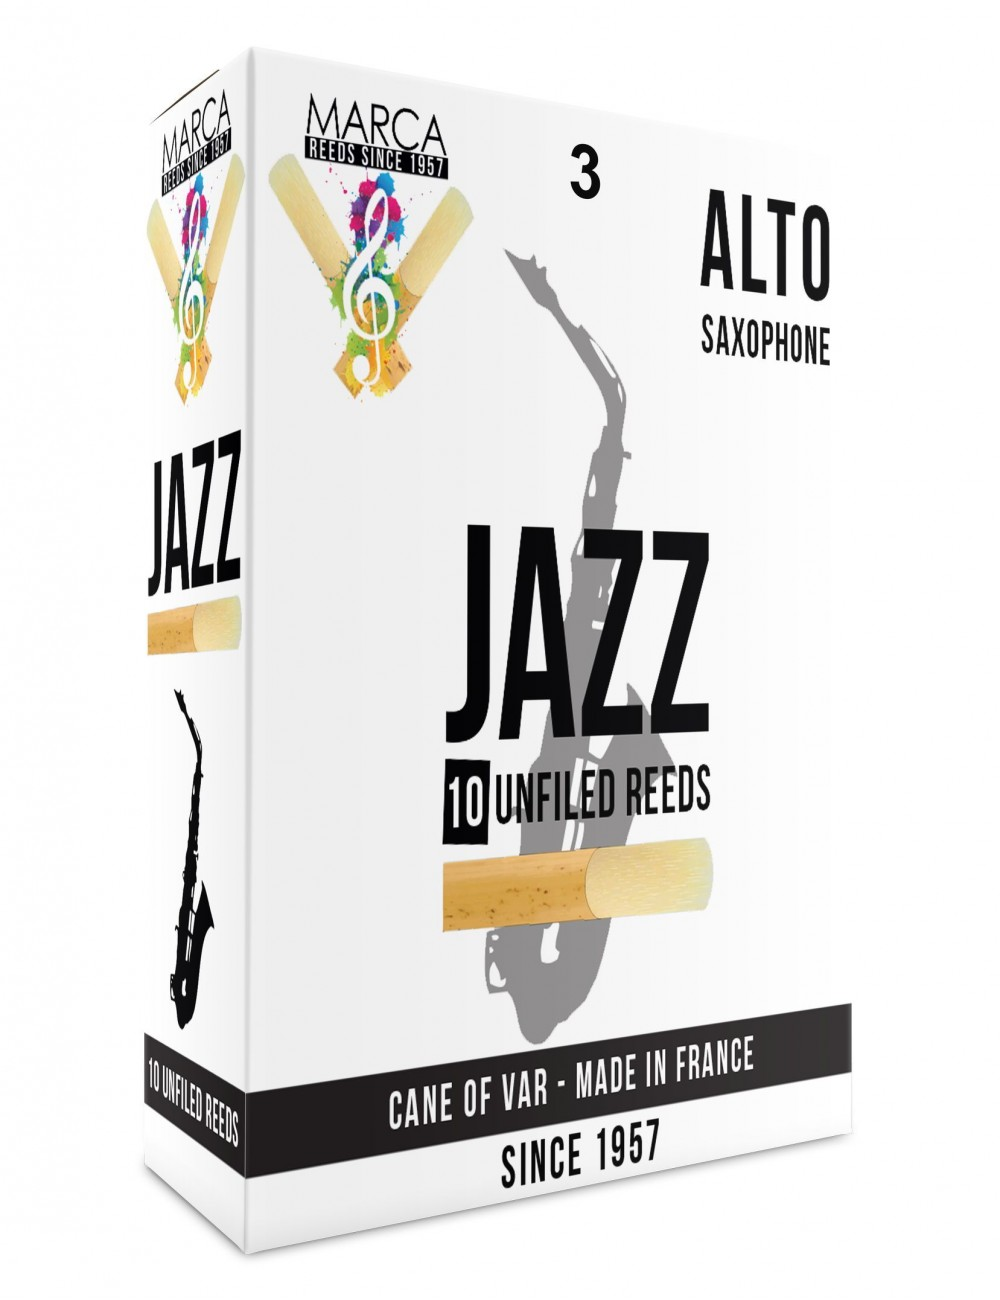 10 REEDS MARCA JAZZ UNFILED ALTO SAXOPHONE 3